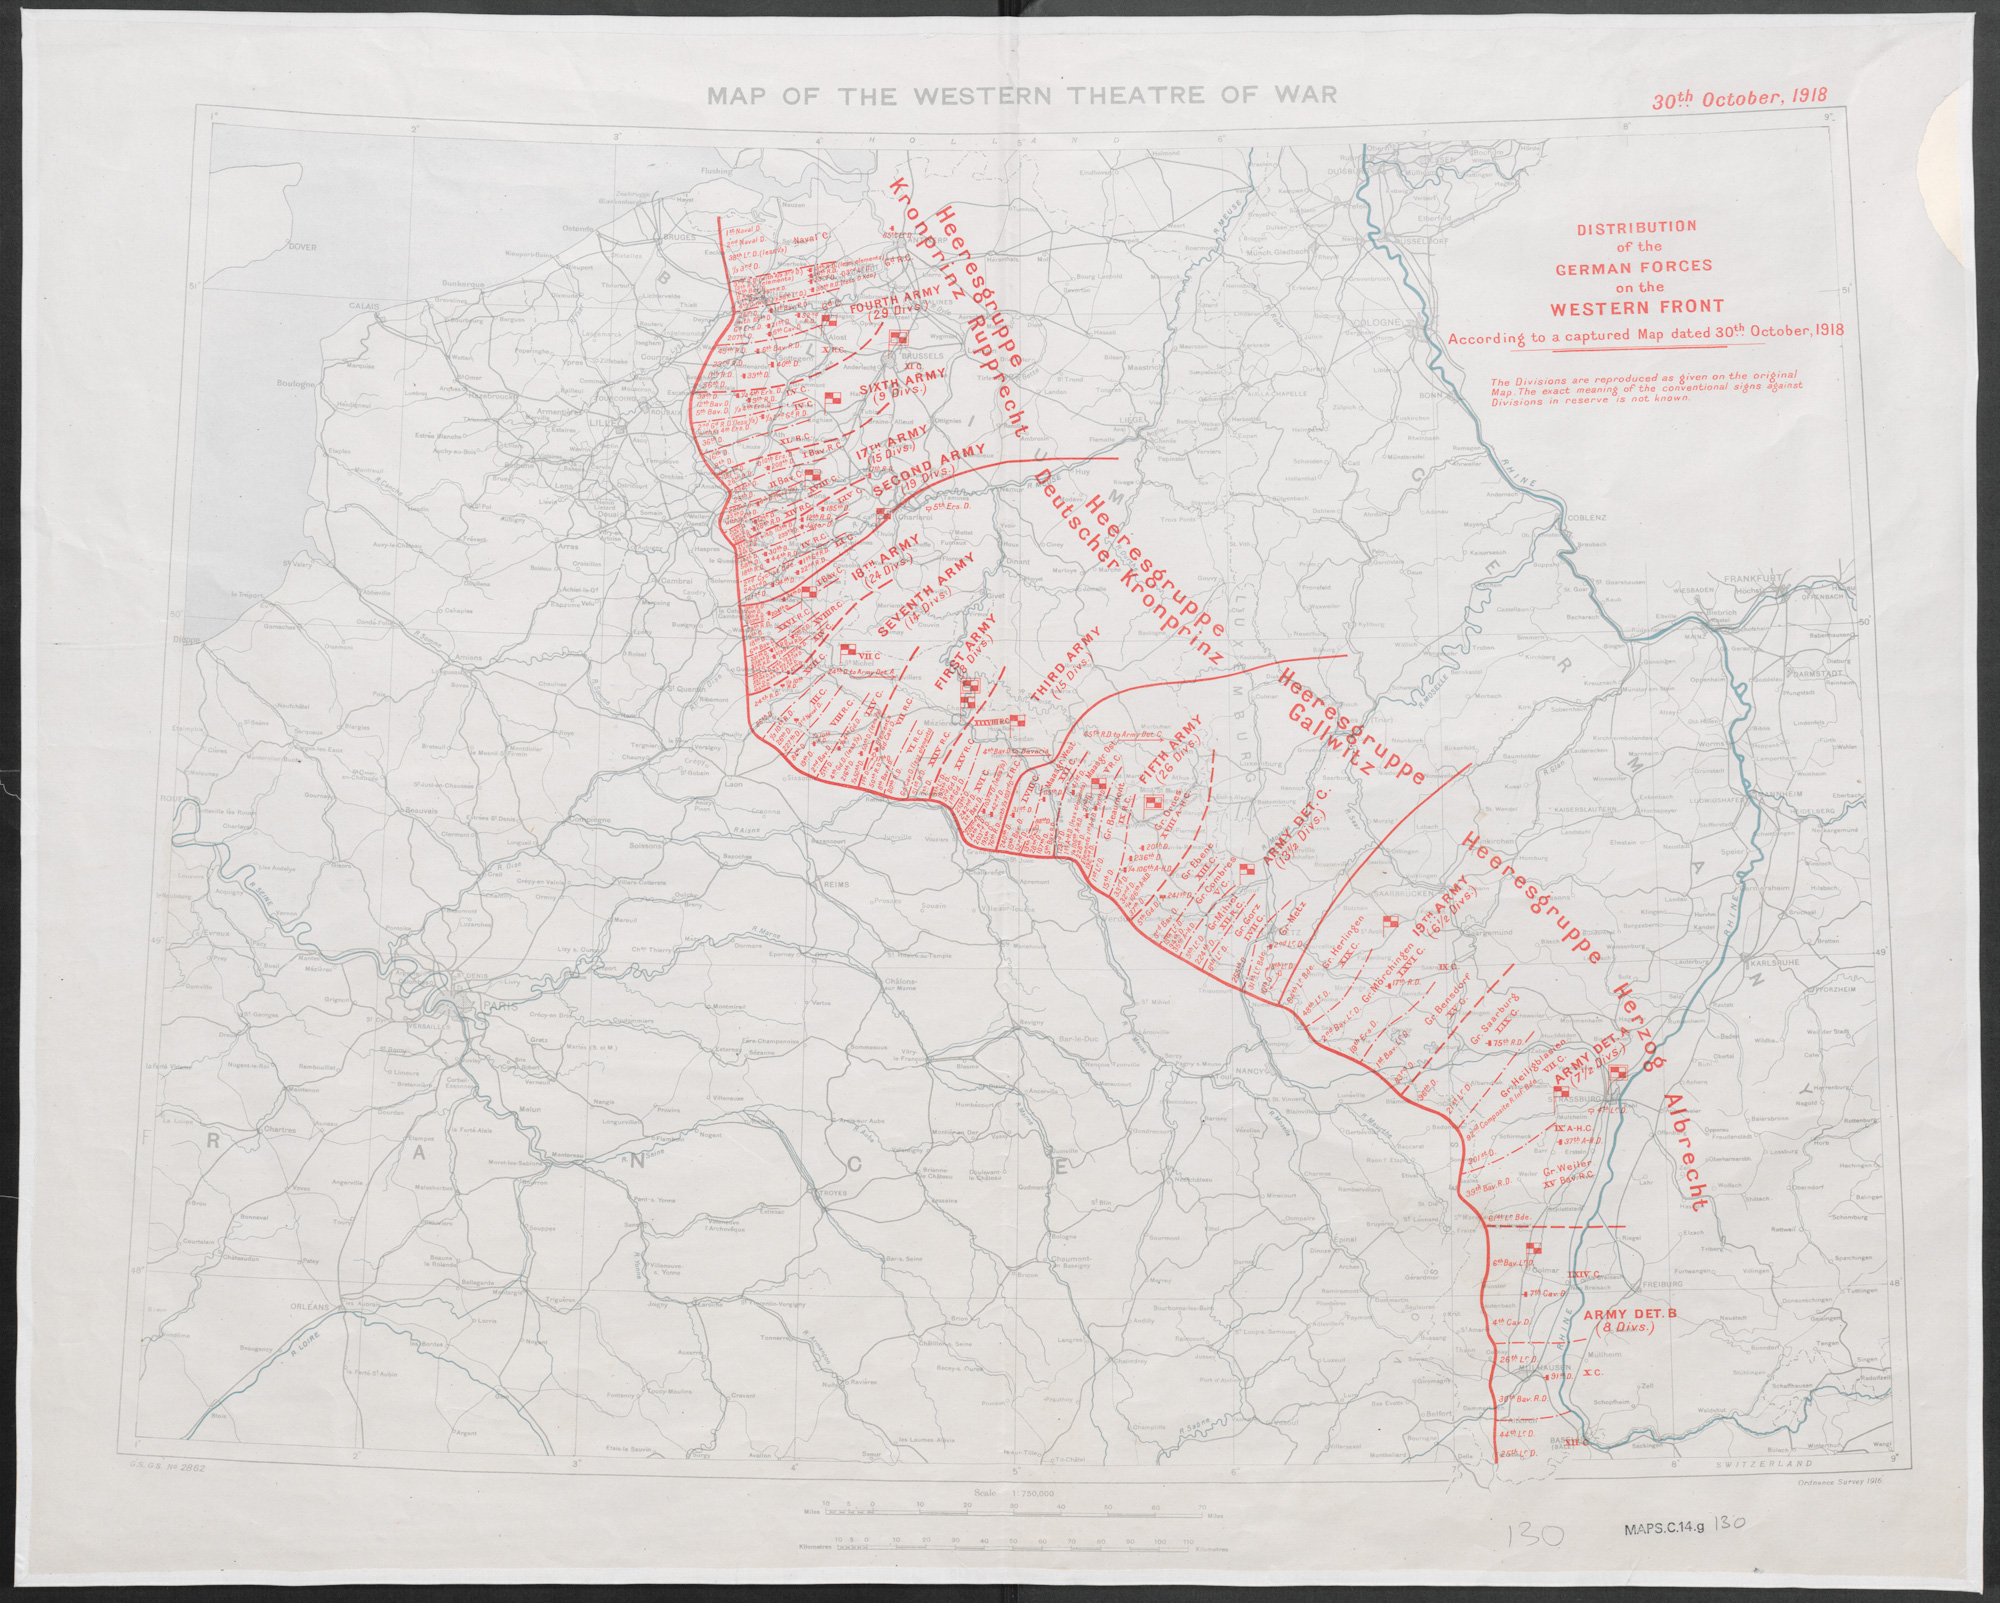 Distribution of German forces on the Western Front according